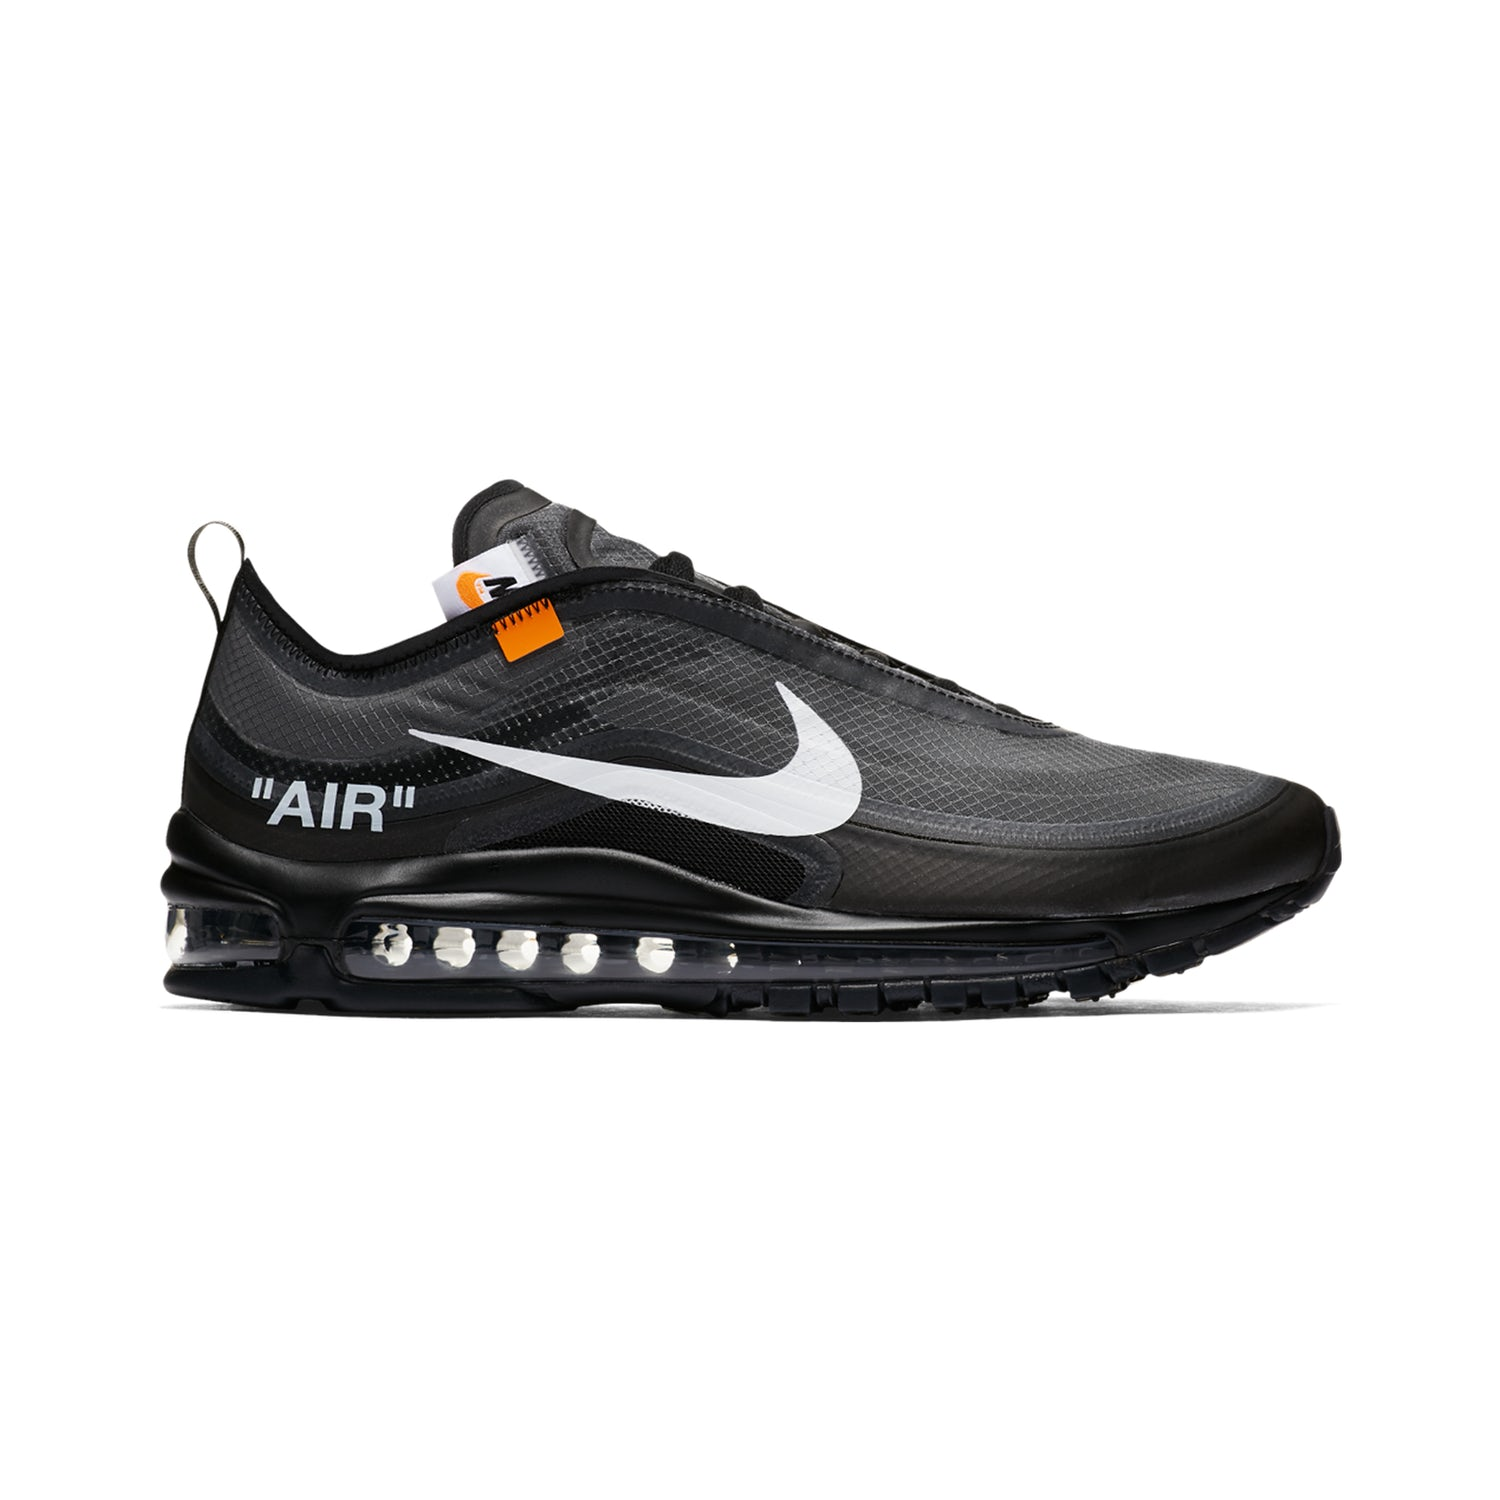 Nike Air OffWhite Black Air Max 97